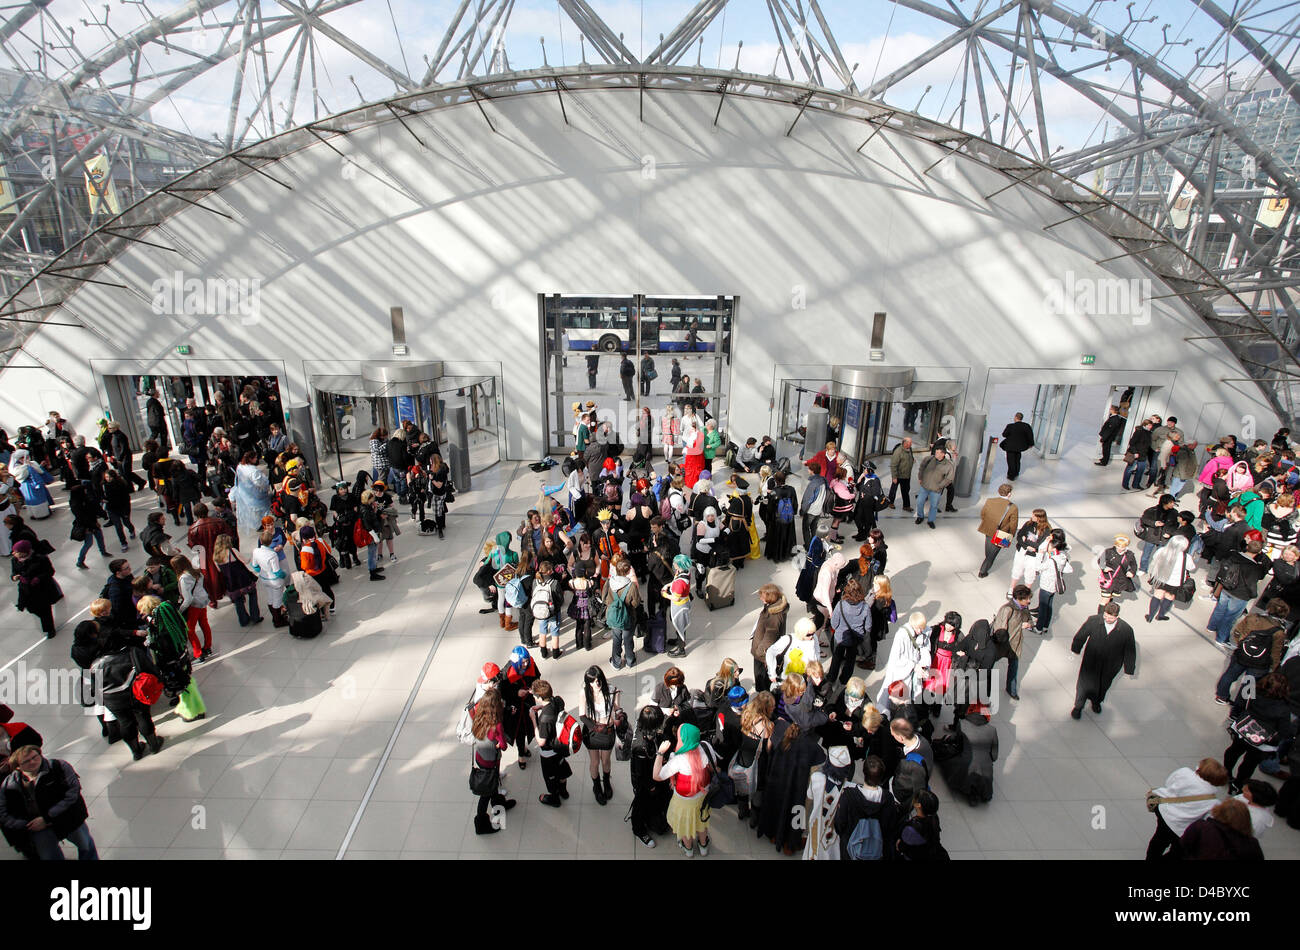 Leipzig, Germany, an exhibition hall during the Leipzig Book Fair - Stock Image